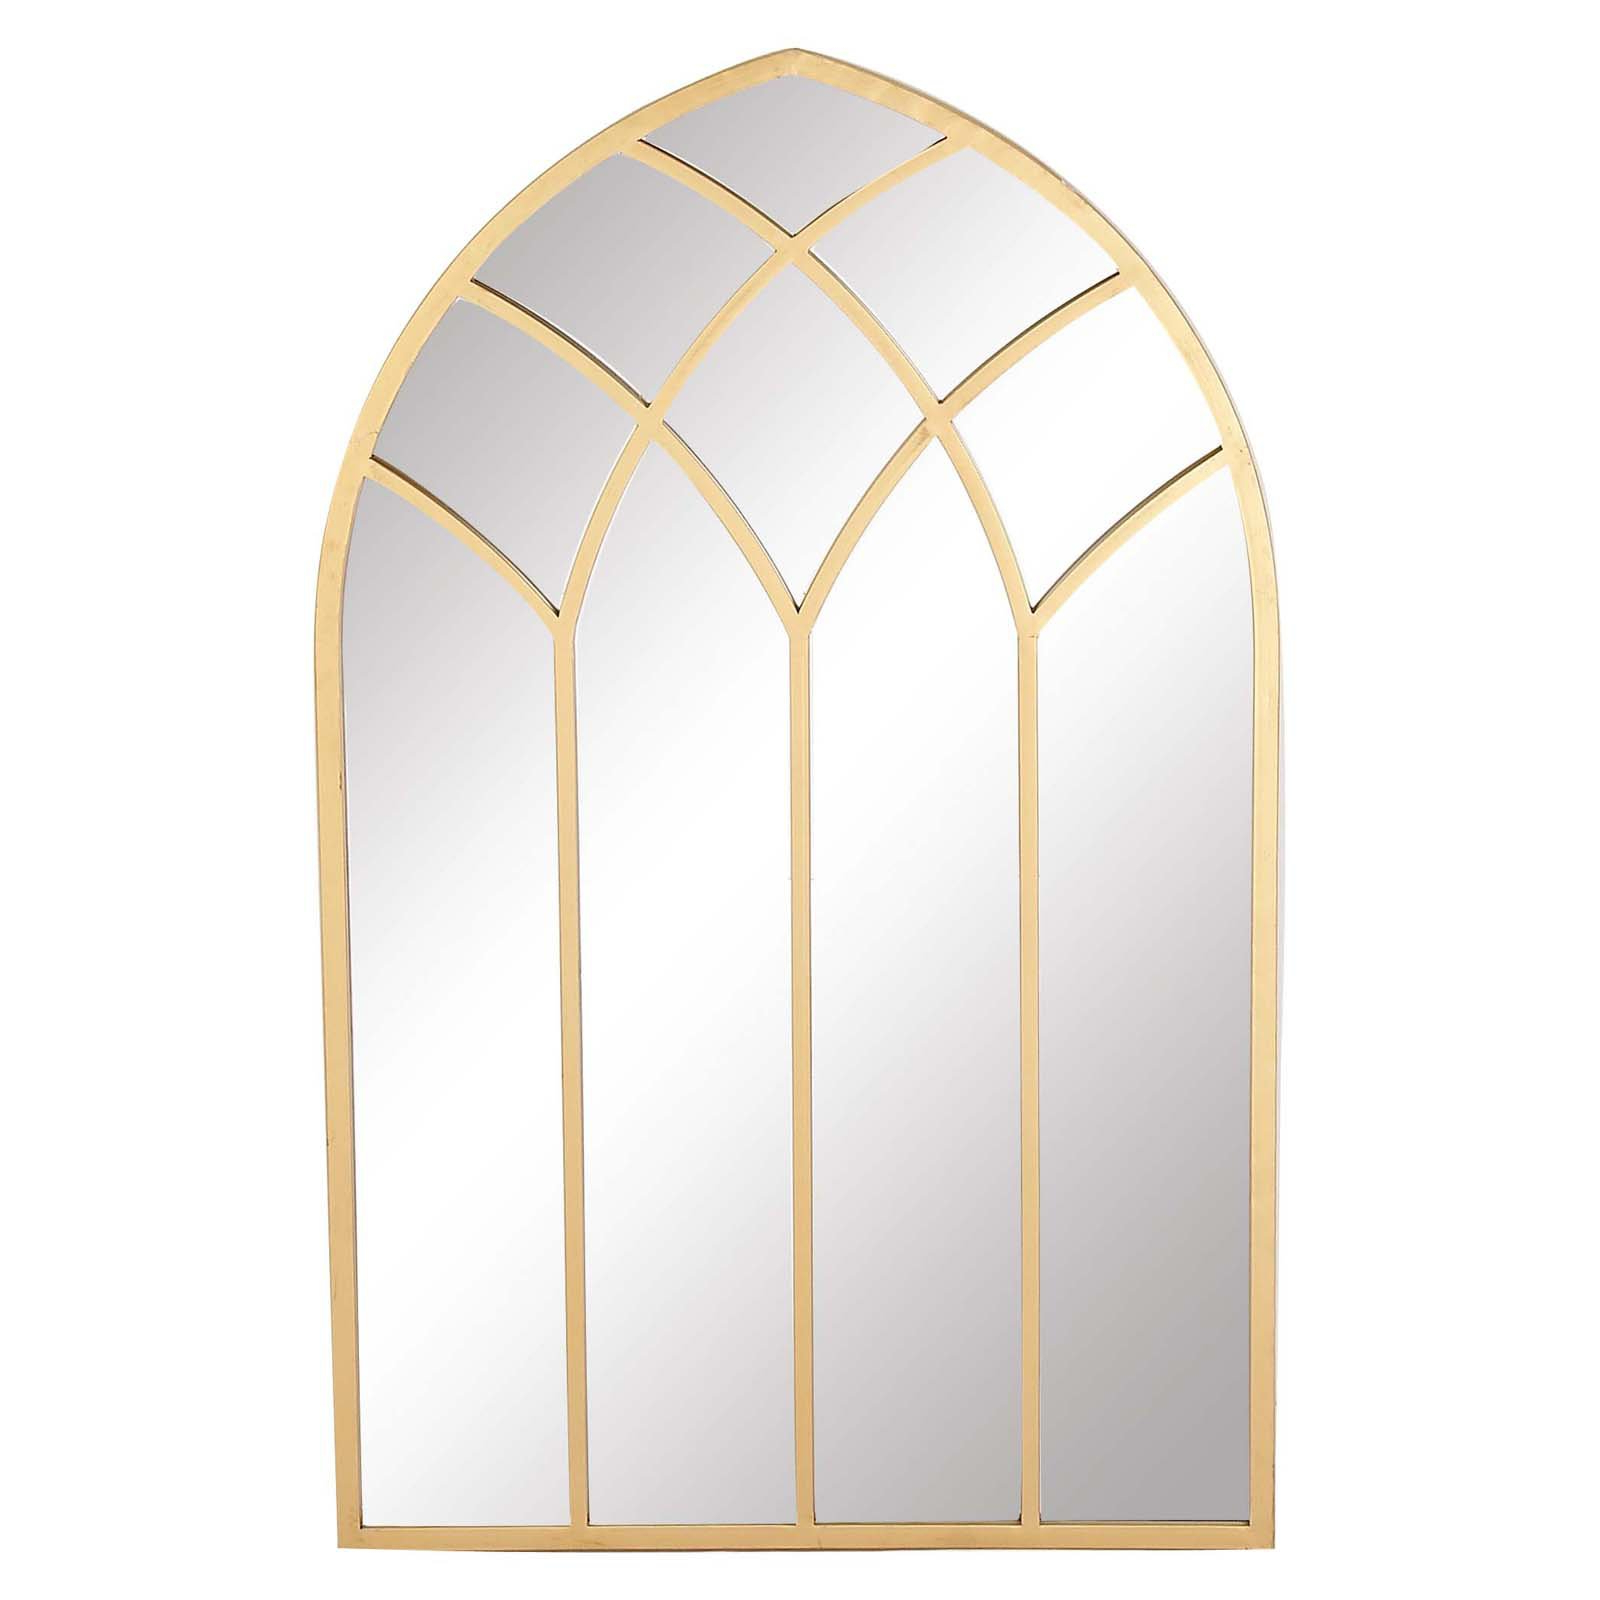 Best And Newest Decmode Iron Framed Arched Window Wall Mirror – 30w X 48h In Regarding Yatendra Cottage/country Beveled Accent Mirrors (View 19 of 20)